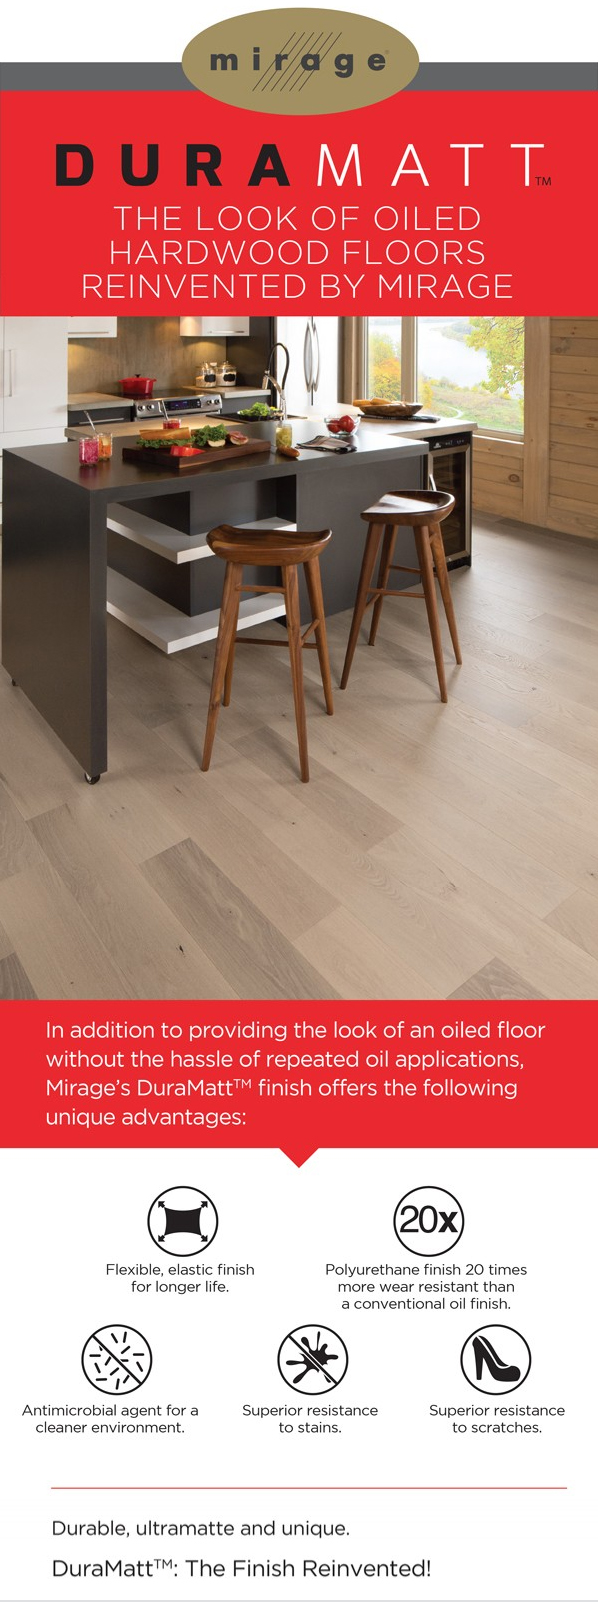 The look of oiled hardwood floors reinvented by Mirage - All Tile Inc.